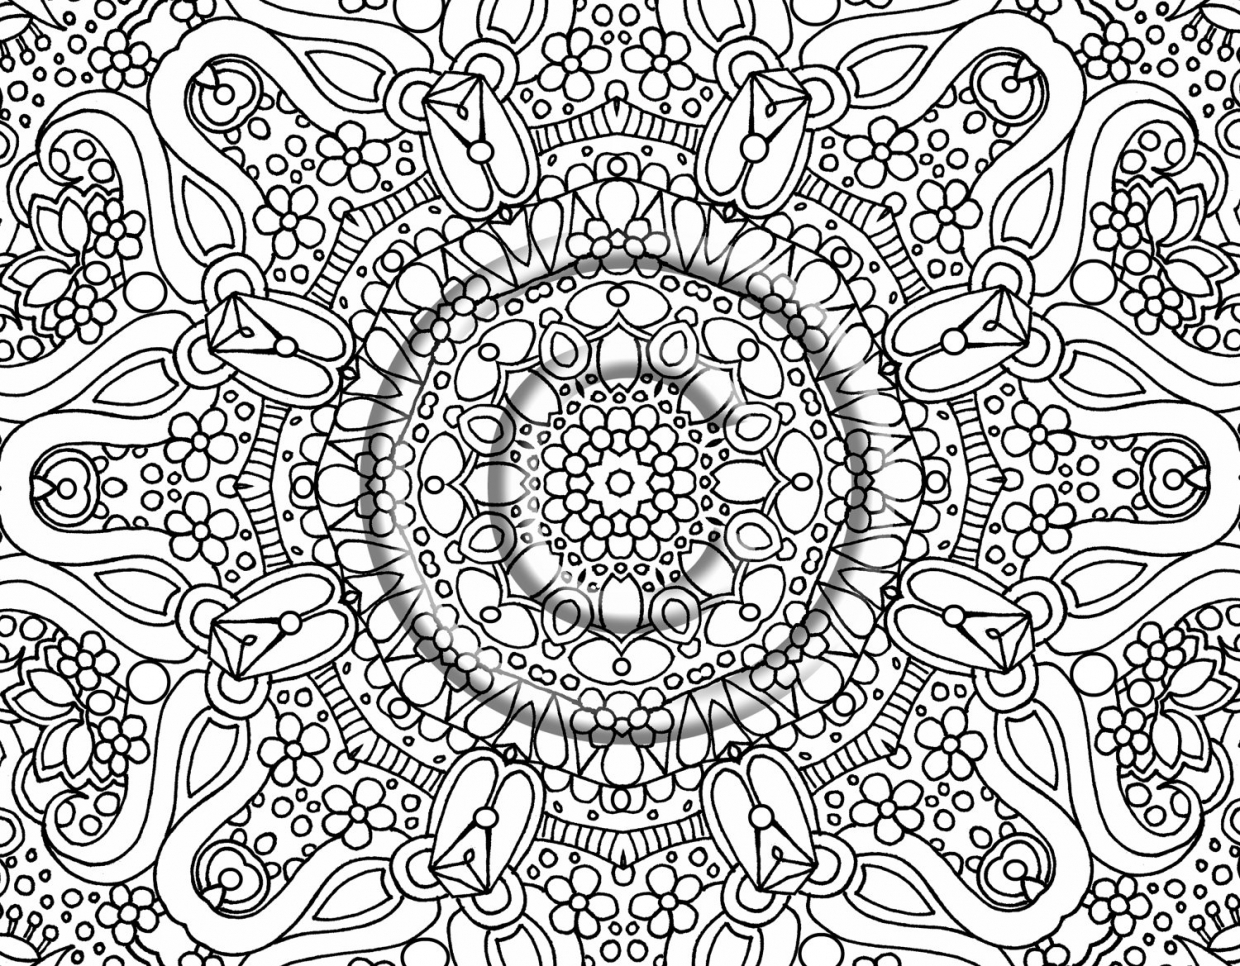 free complex coloring pages to print for adults xy4b6 - Complex Coloring Pages